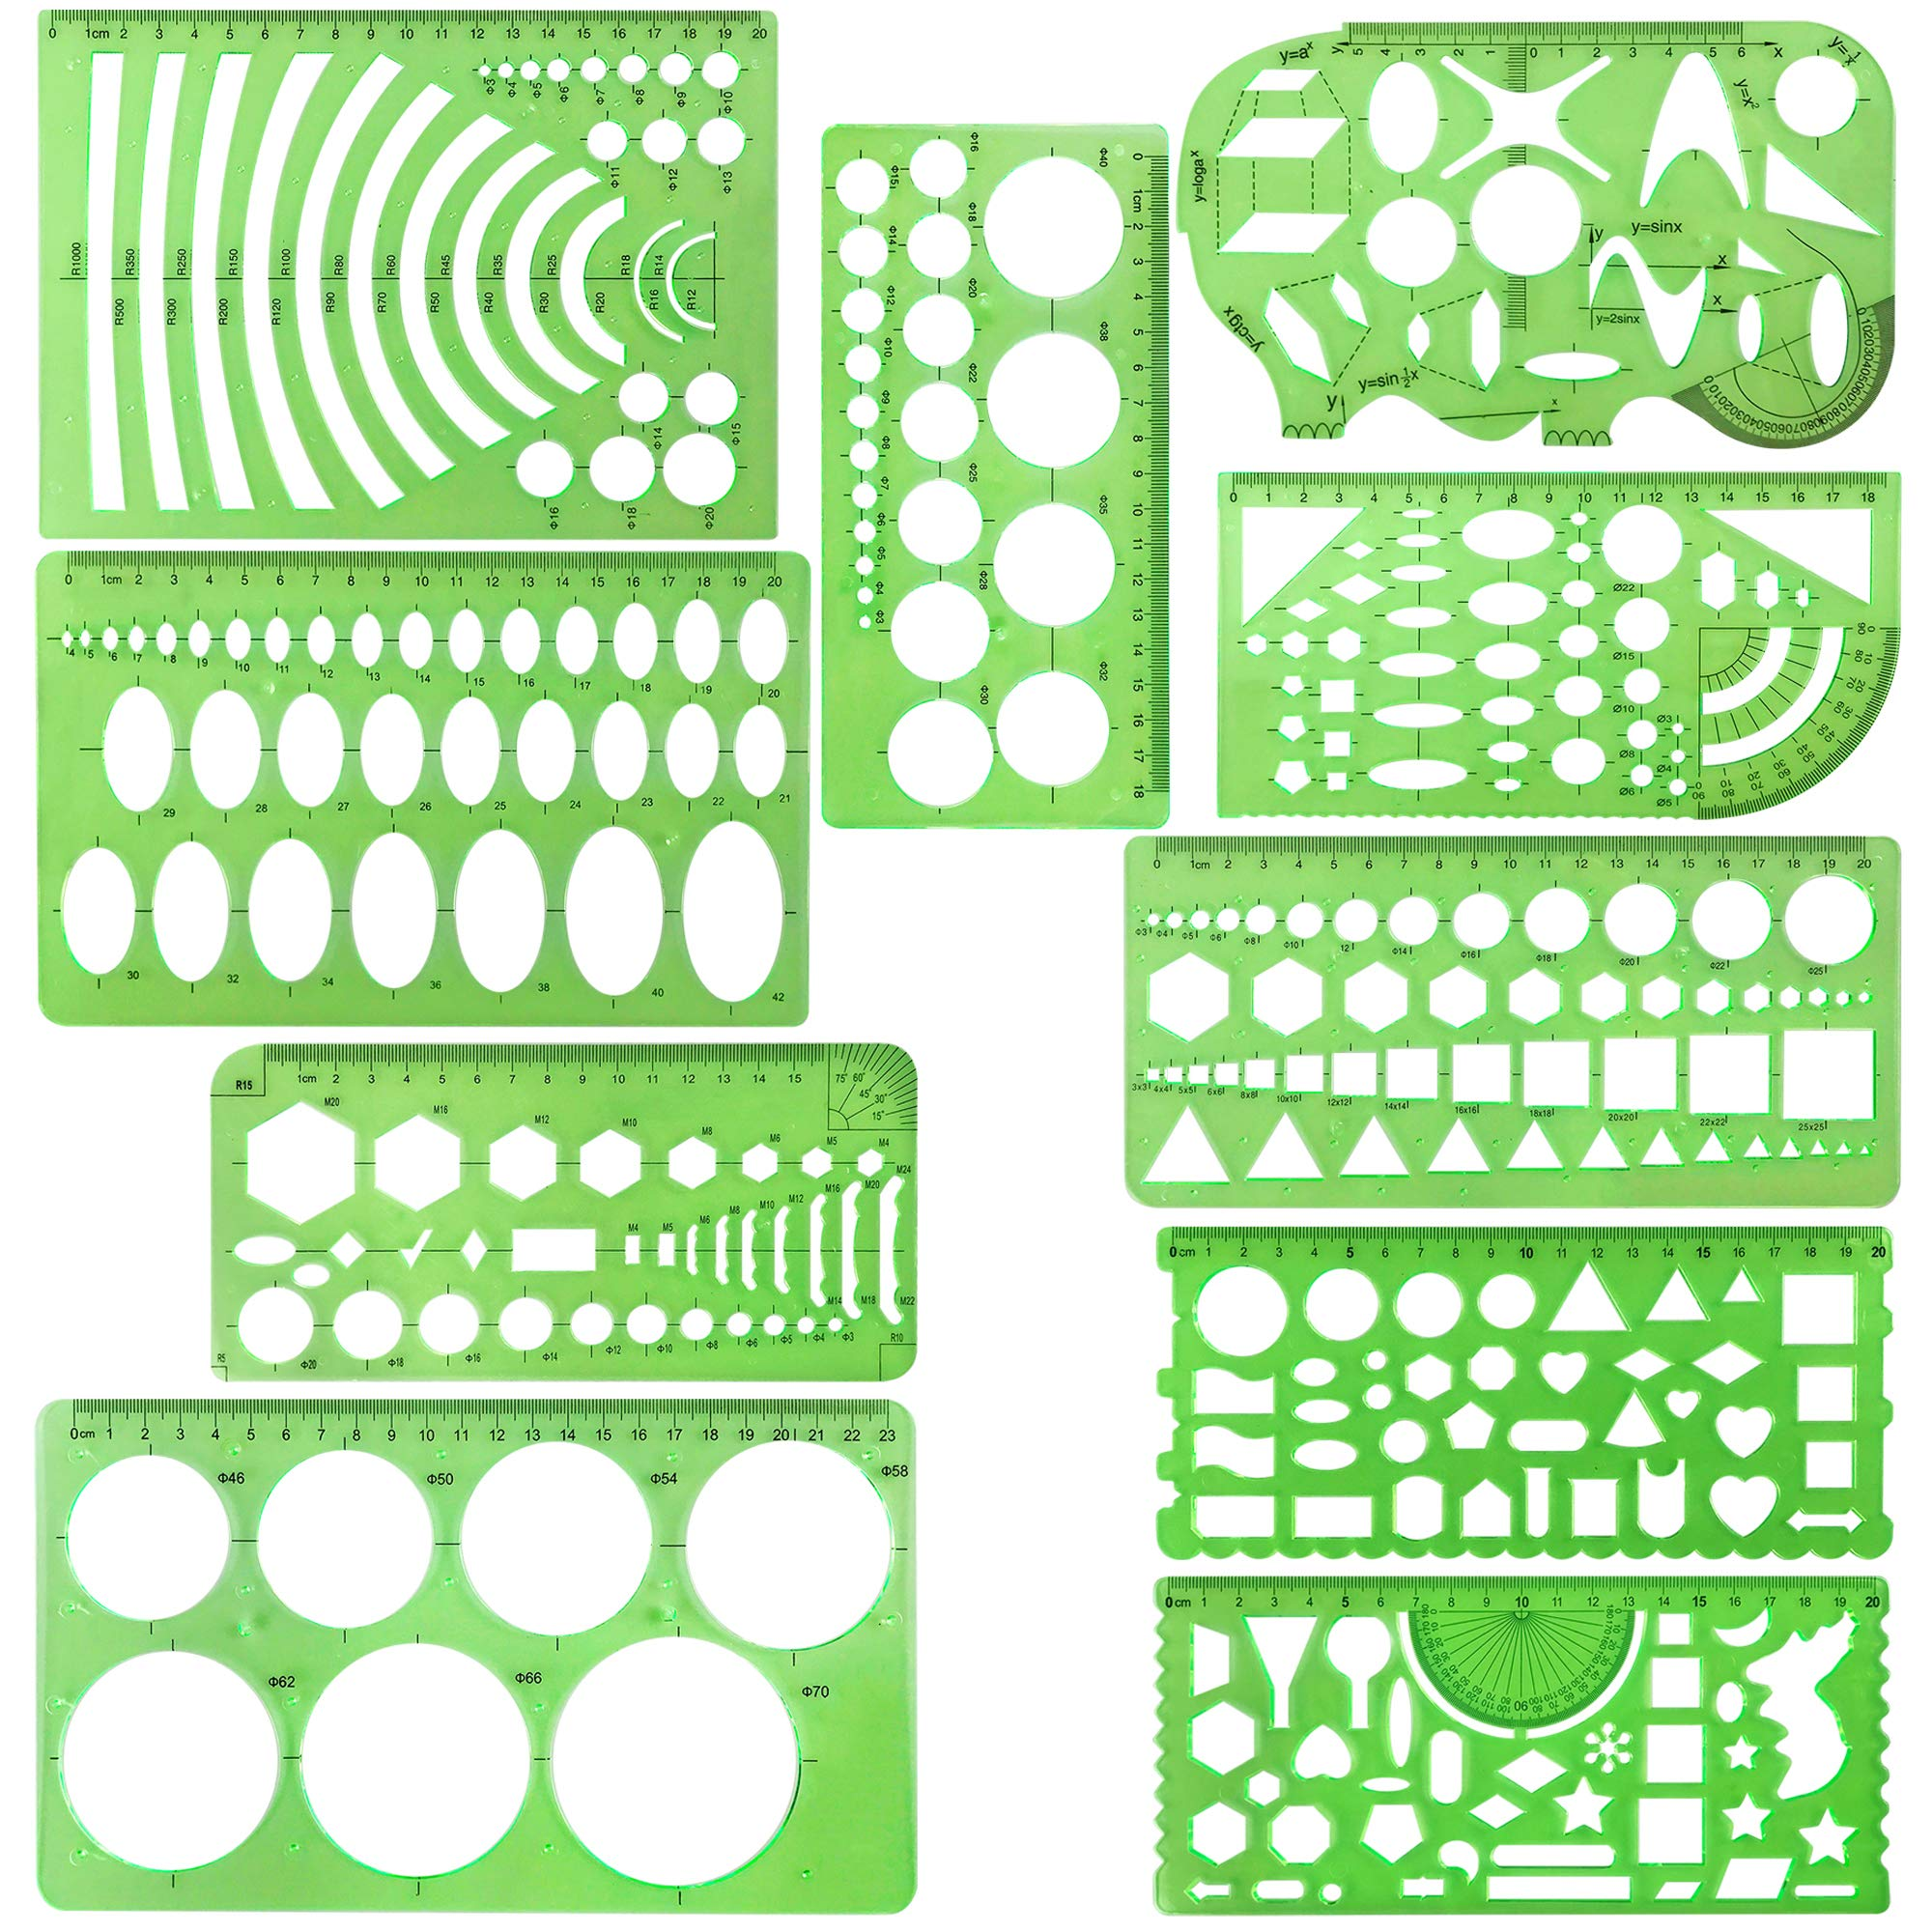 10 Pieces Green Plastic Drawings Templates Measuring Templates Geometric Rulers for School and Office Supplies by Lemimo